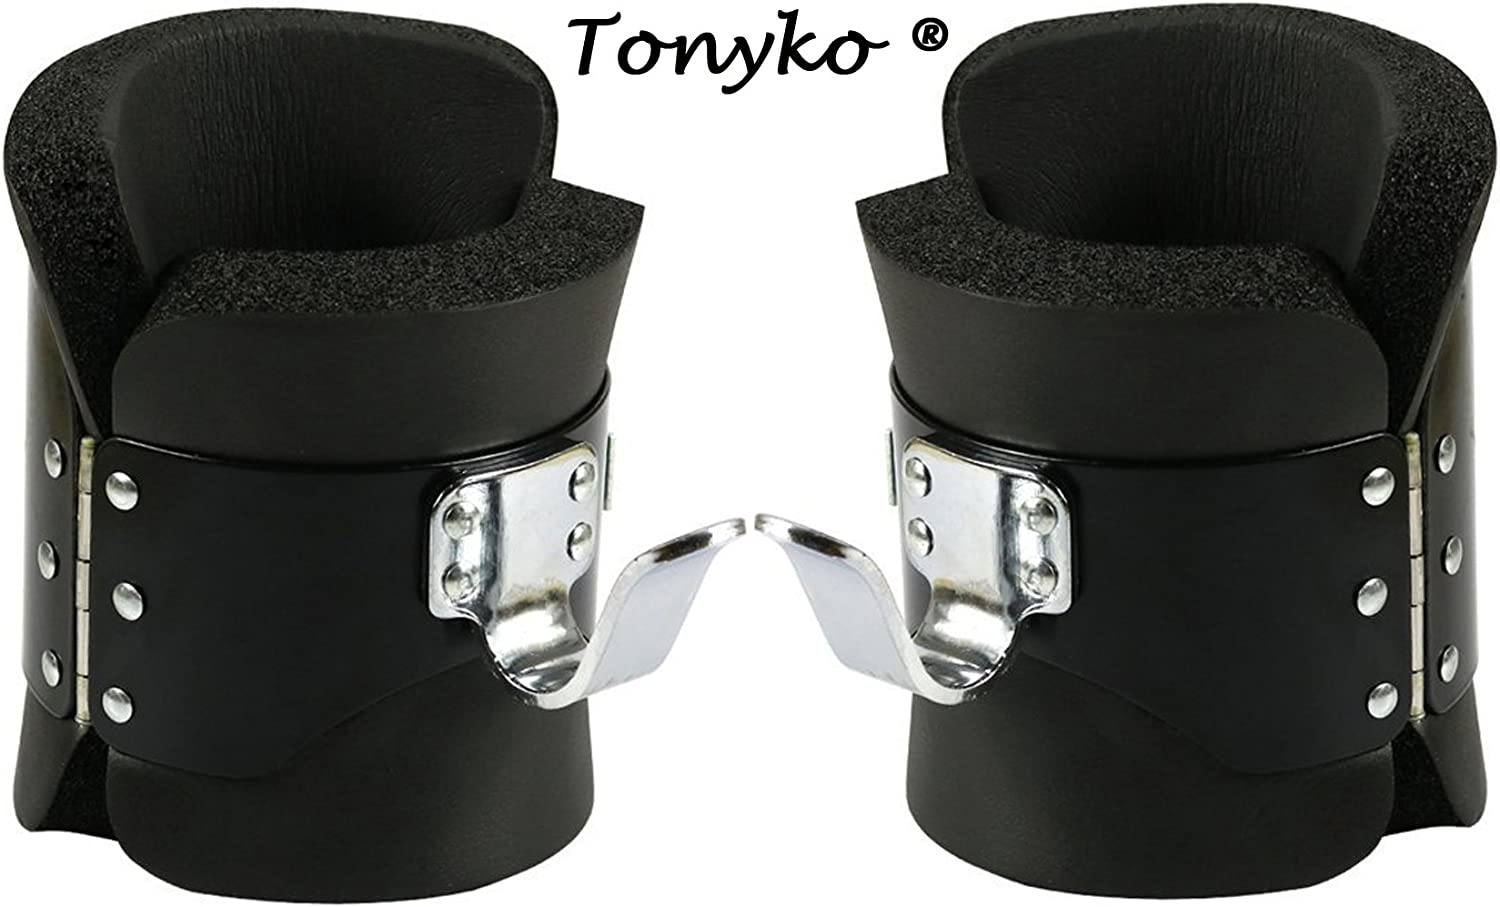 Tonyko Gravity Inversion Boots